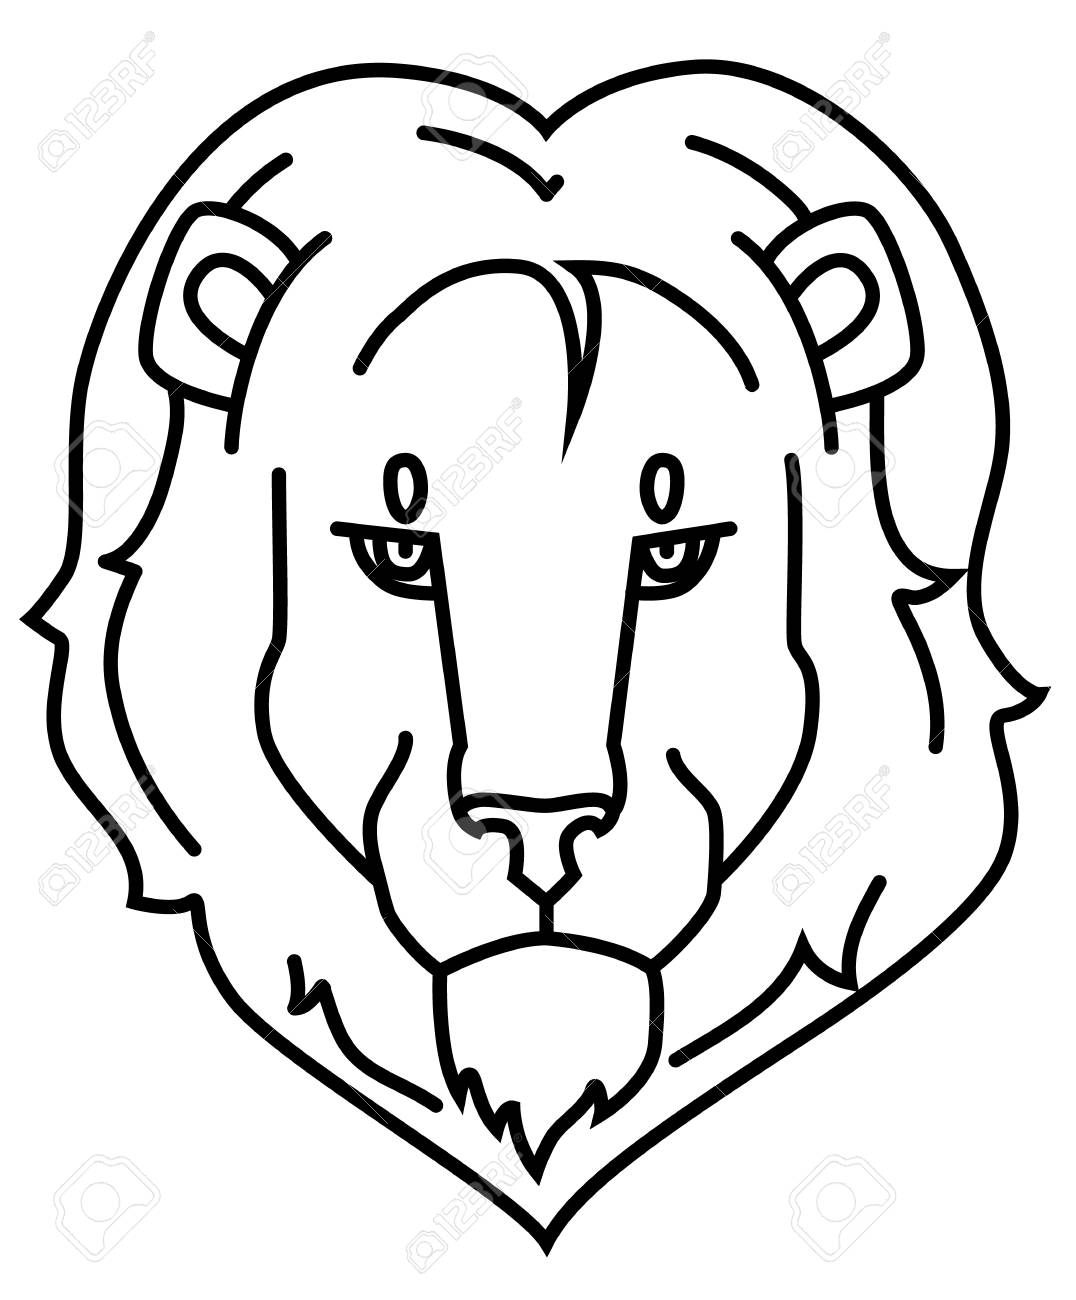 Logo Lion S Head Outlines Royalty Free Cliparts Vectors And Stock Illustration Image 110060329 Large png 2400px small png 300px. logo lion s head outlines